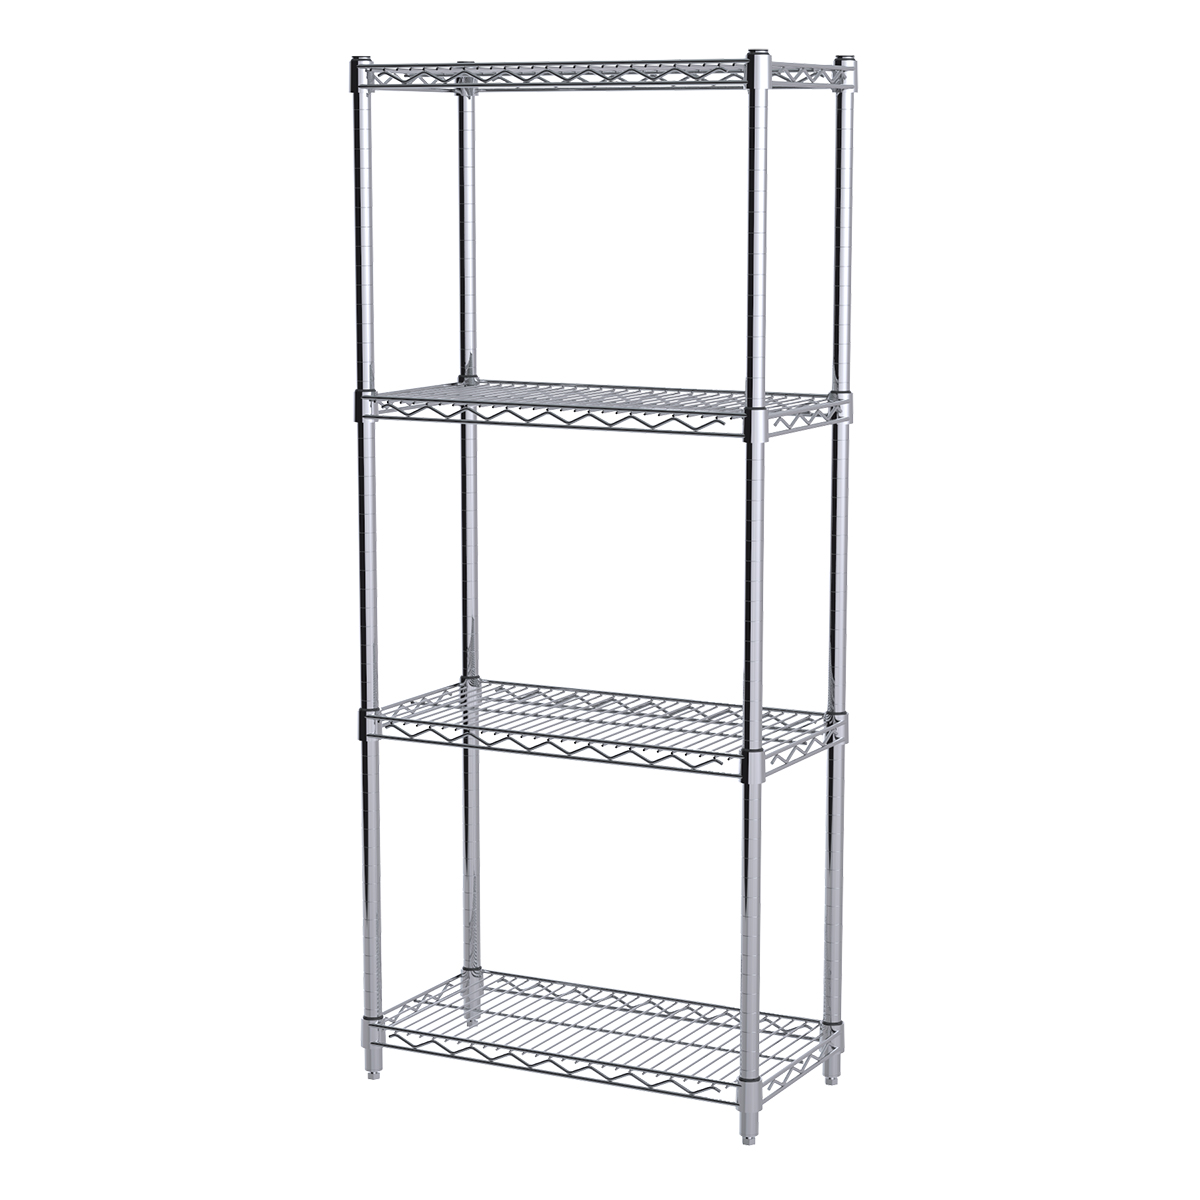 12x24x54, 4-Shelf Wire Shelving Starter Unit, Chrome.  This item sold in carton quantities of 1.